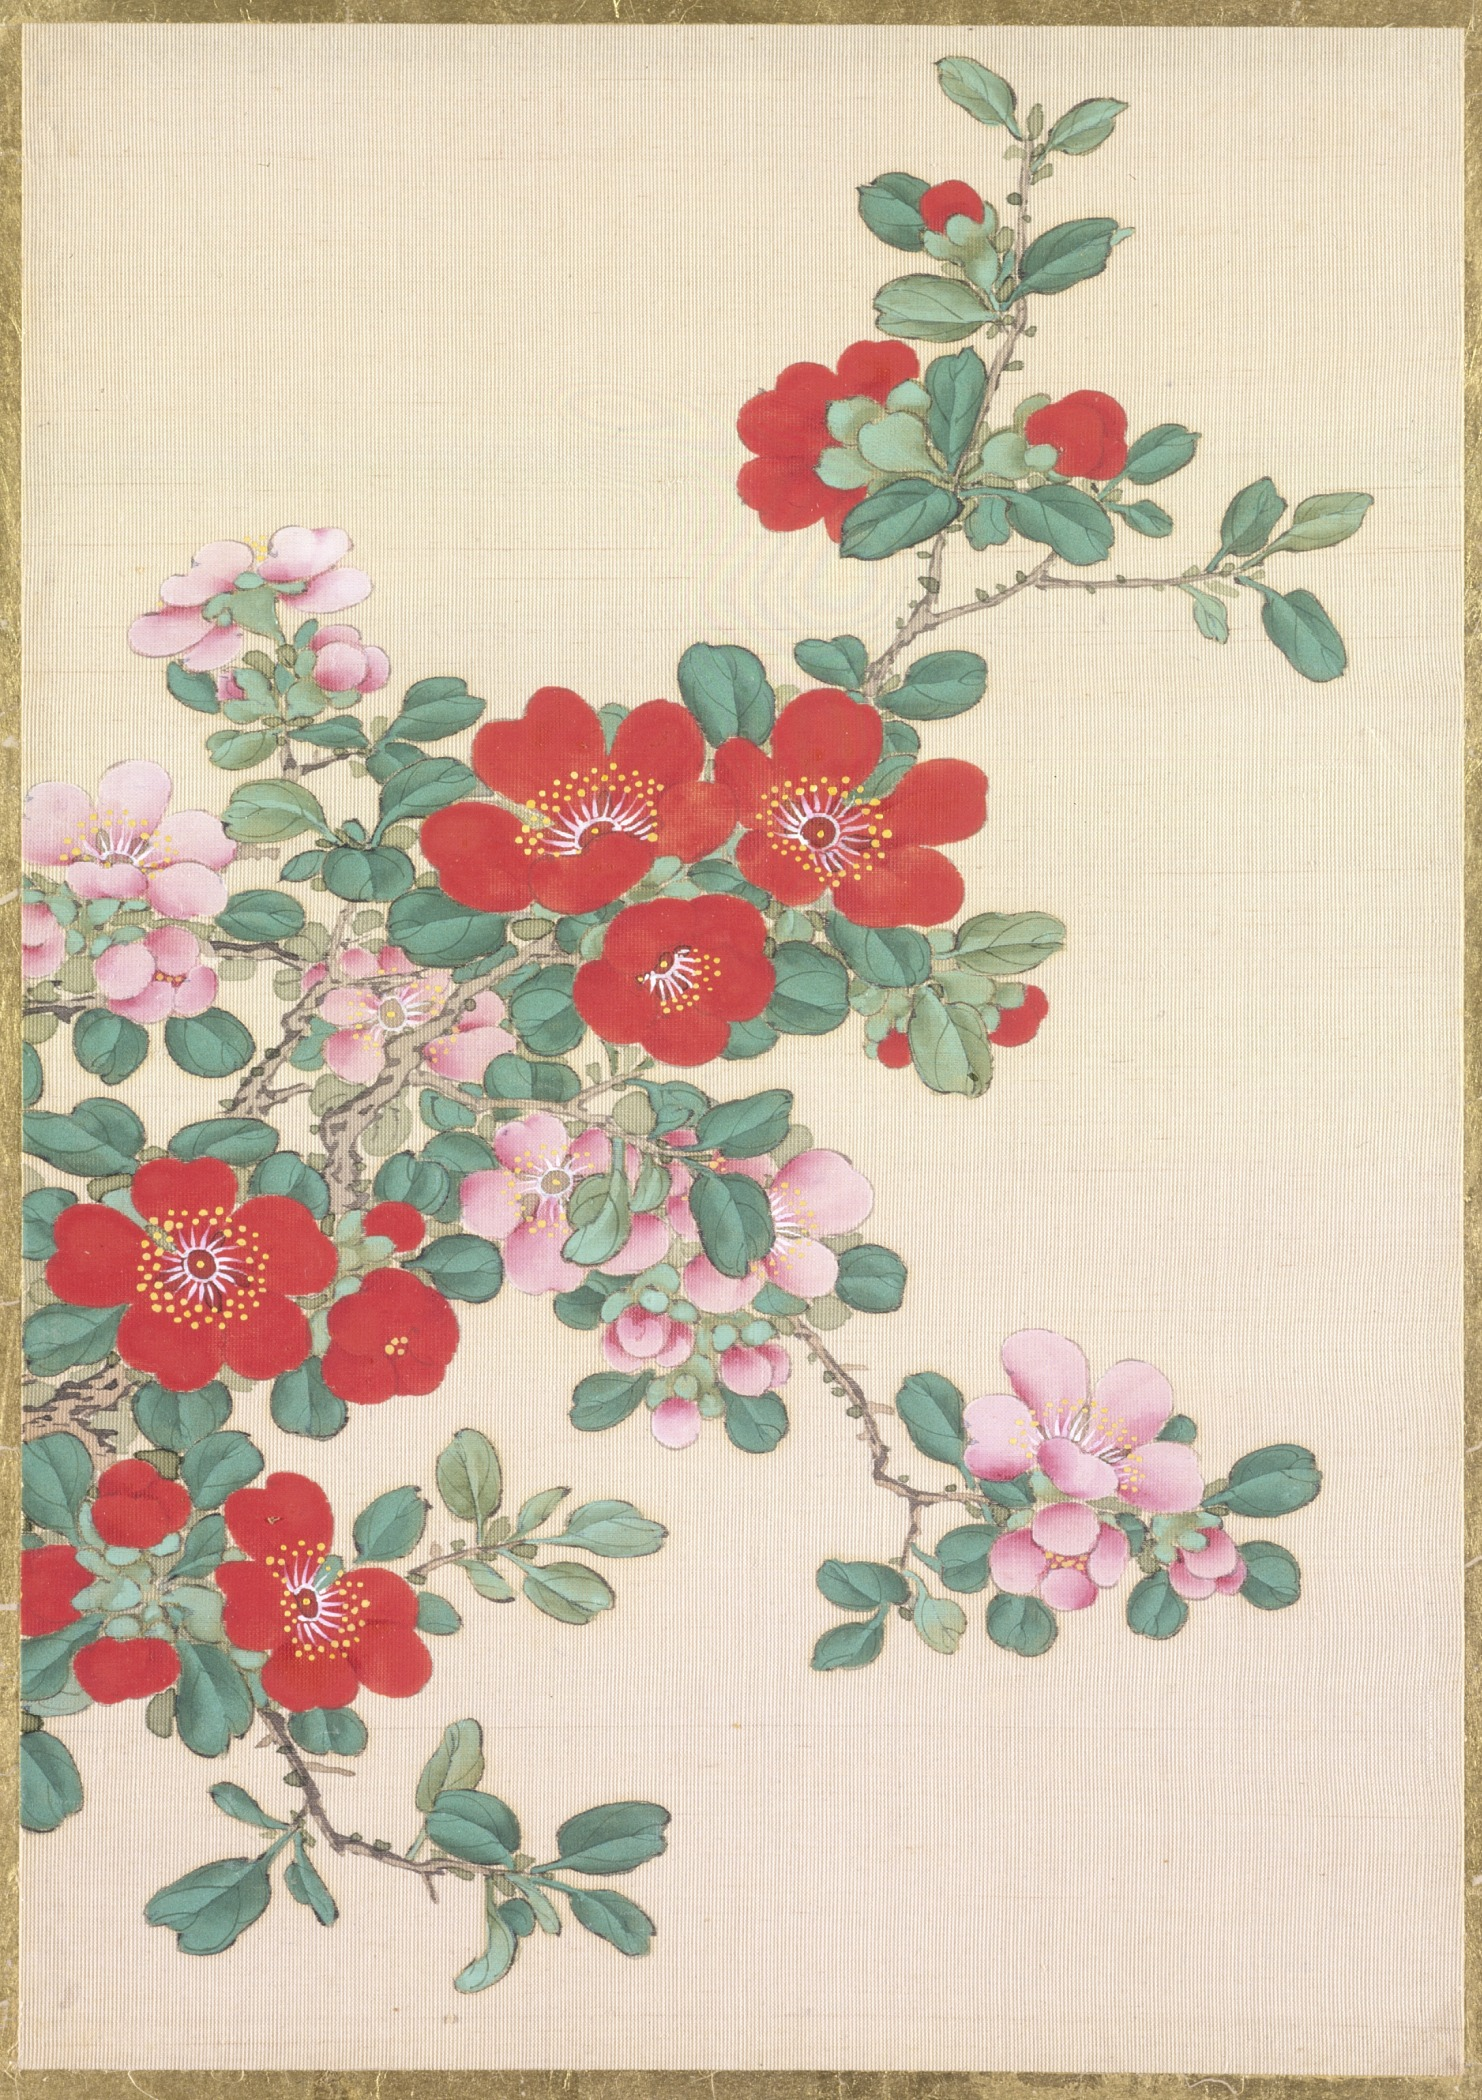 https://upload.wikimedia.org/wikipedia/commons/6/6b/Pictures_of_Flowers_and_Birds_LACMA_M.85.99_%2810_of_25%29.jpg